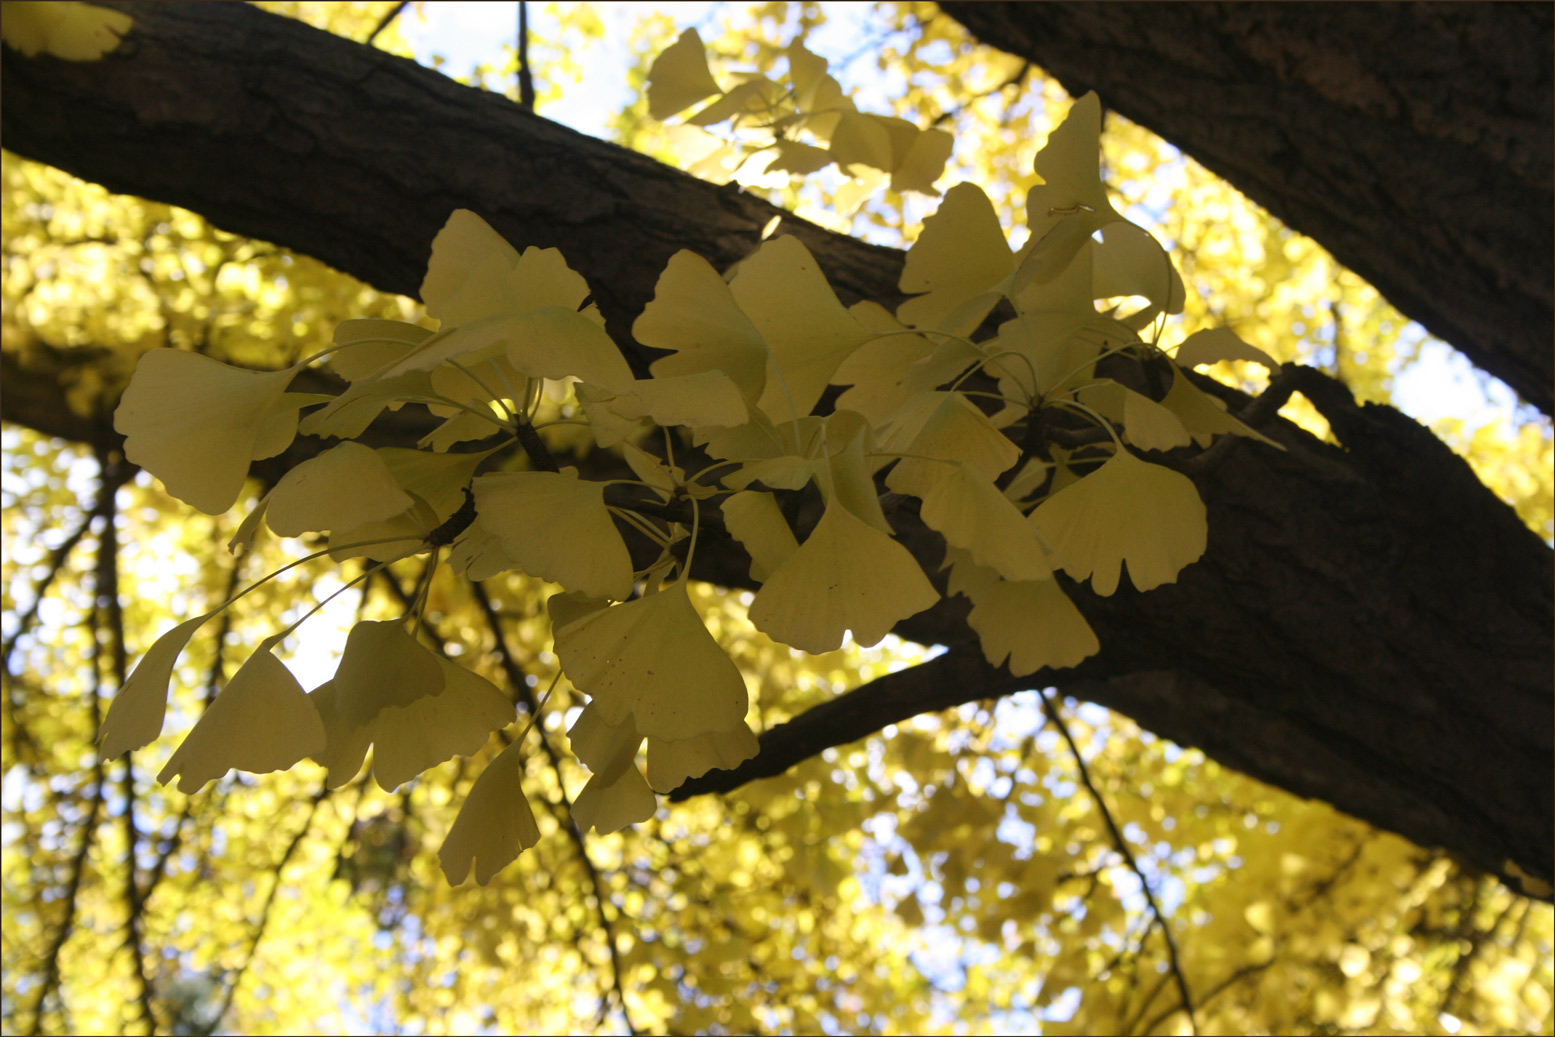 Ginkgo biloba in Washington Park in Albany New York